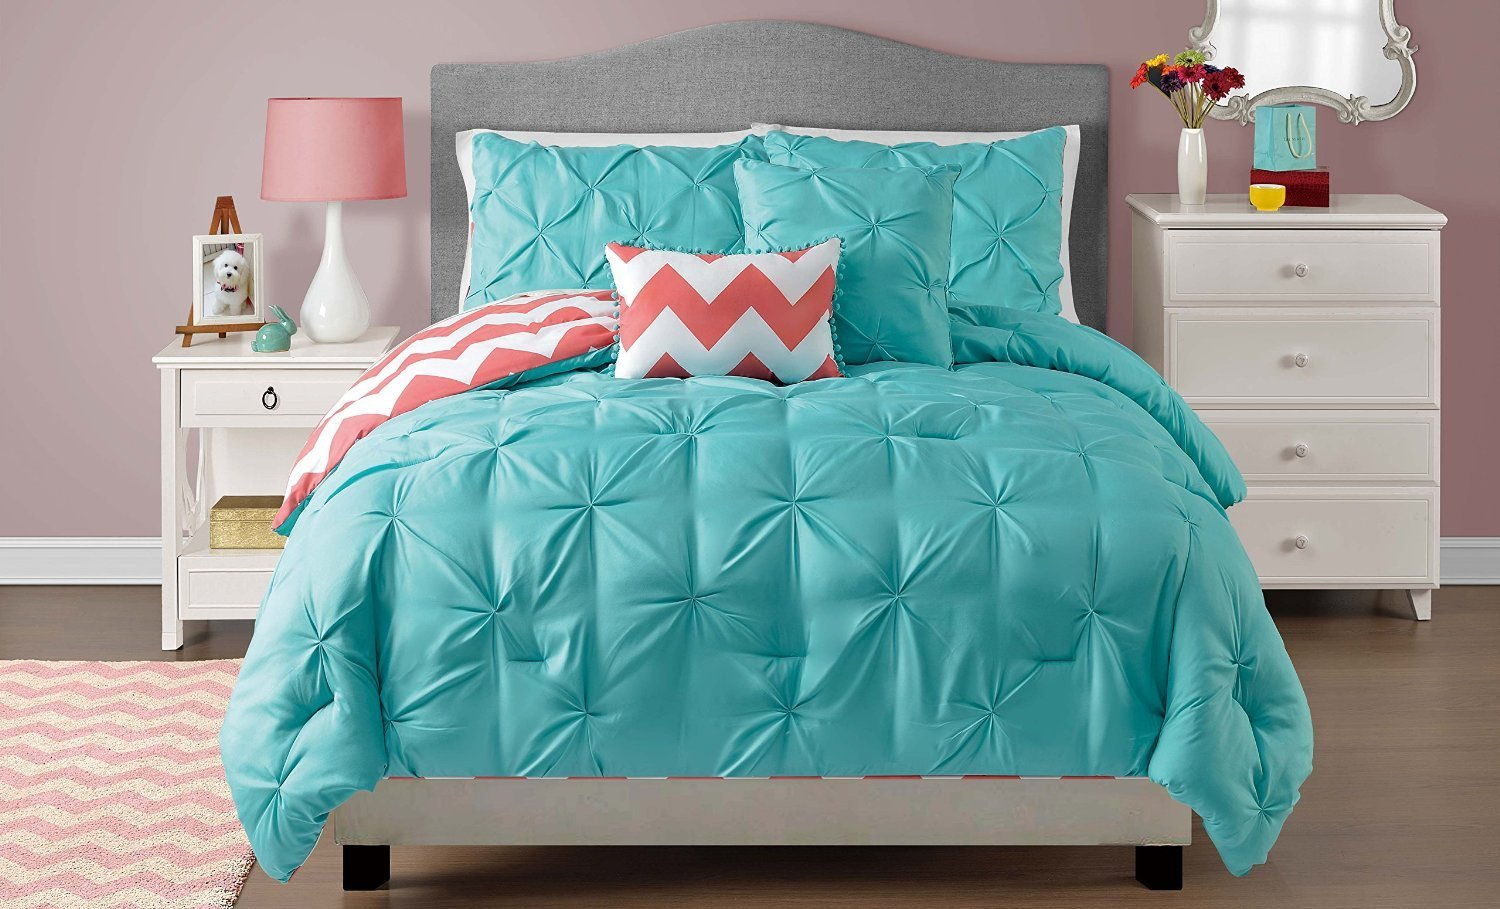 Queen / Full Sophia Turquoise Blue Pinch Pleat Bedding Reversible to Zig Zag Chevron Design- comforter set